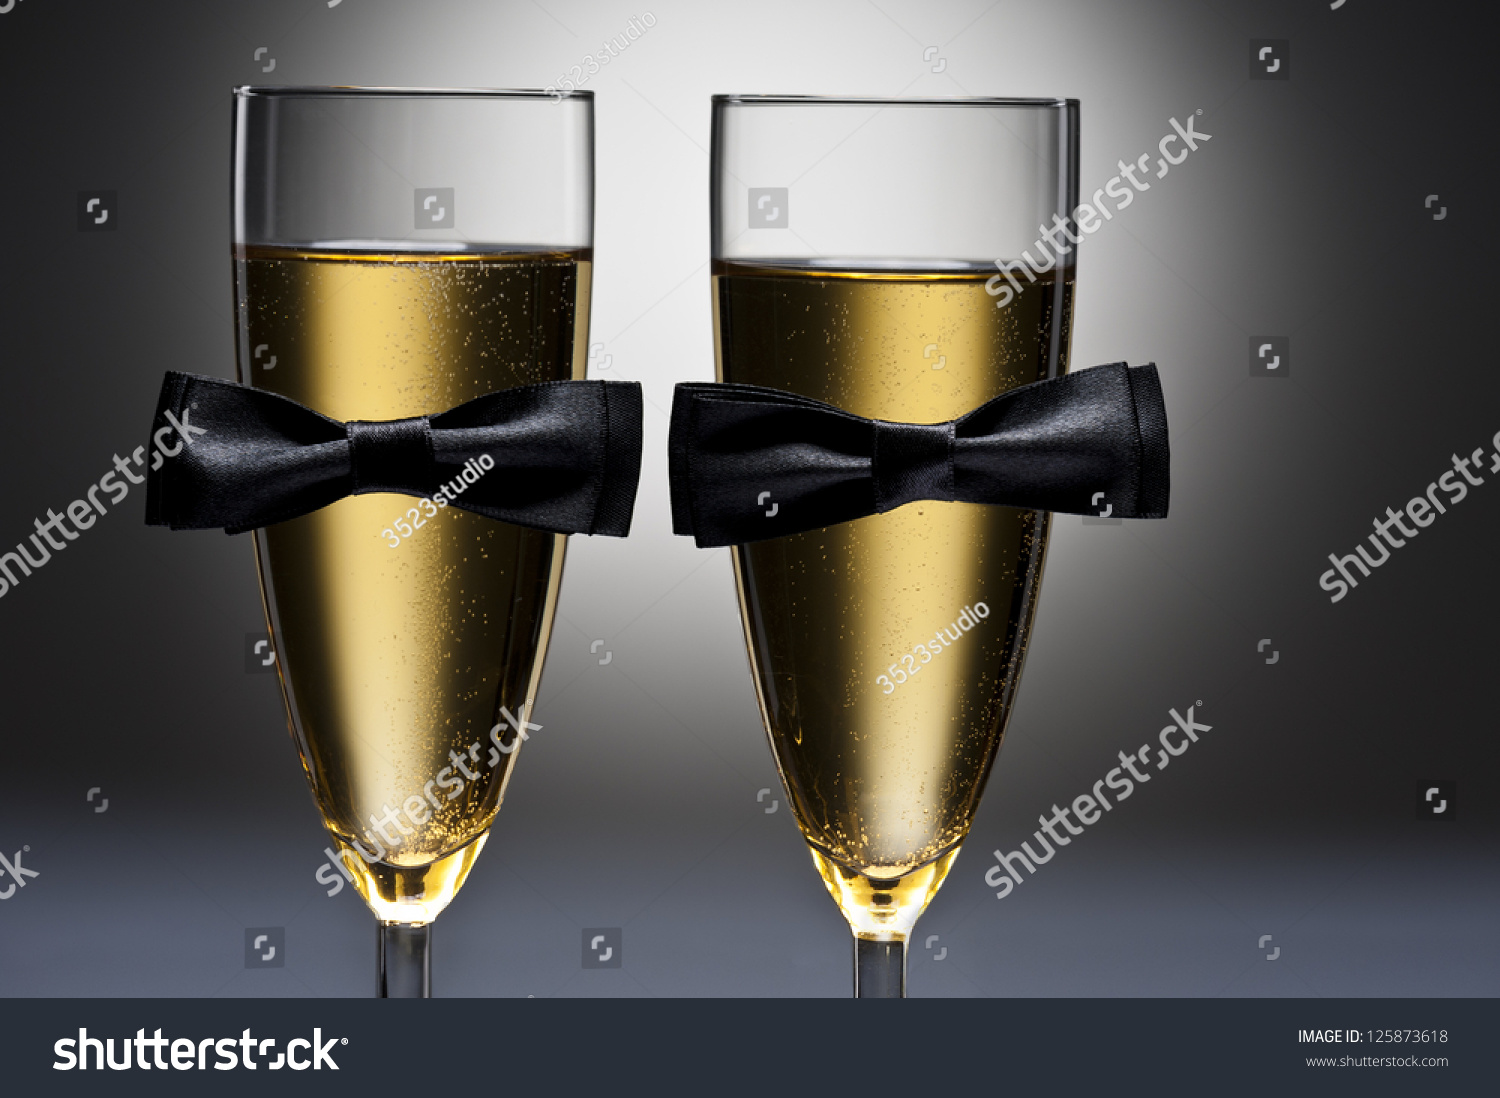 decorate champagne glasses. Champagne glasses with conceptual same sex decoration for gay men Glasses Conceptual Same Sex Decoration Stock Photo